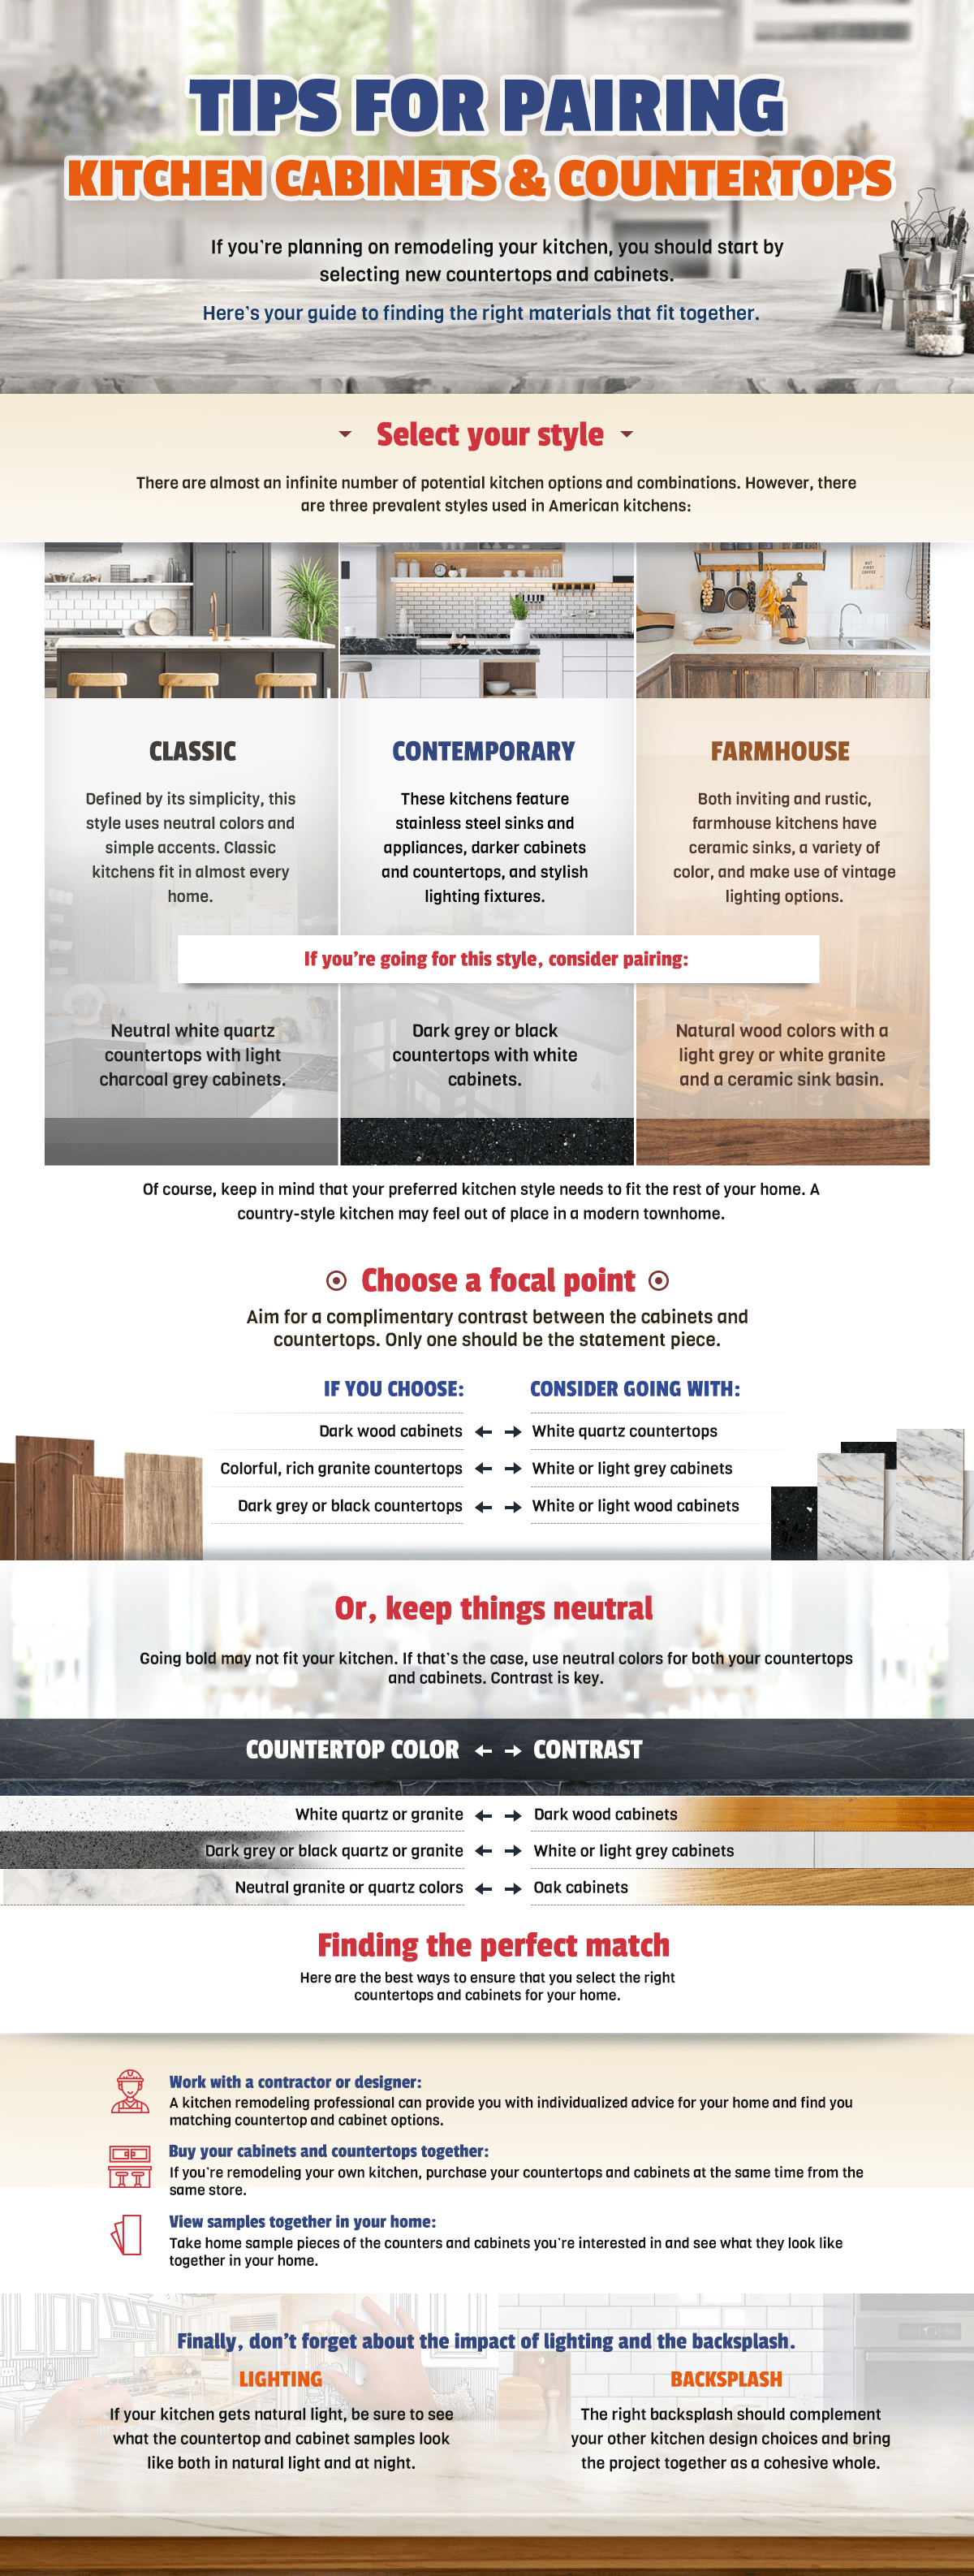 image - [INFOGRAPHIC] Tips for Pairing Kitchen Cabinets and Countertops